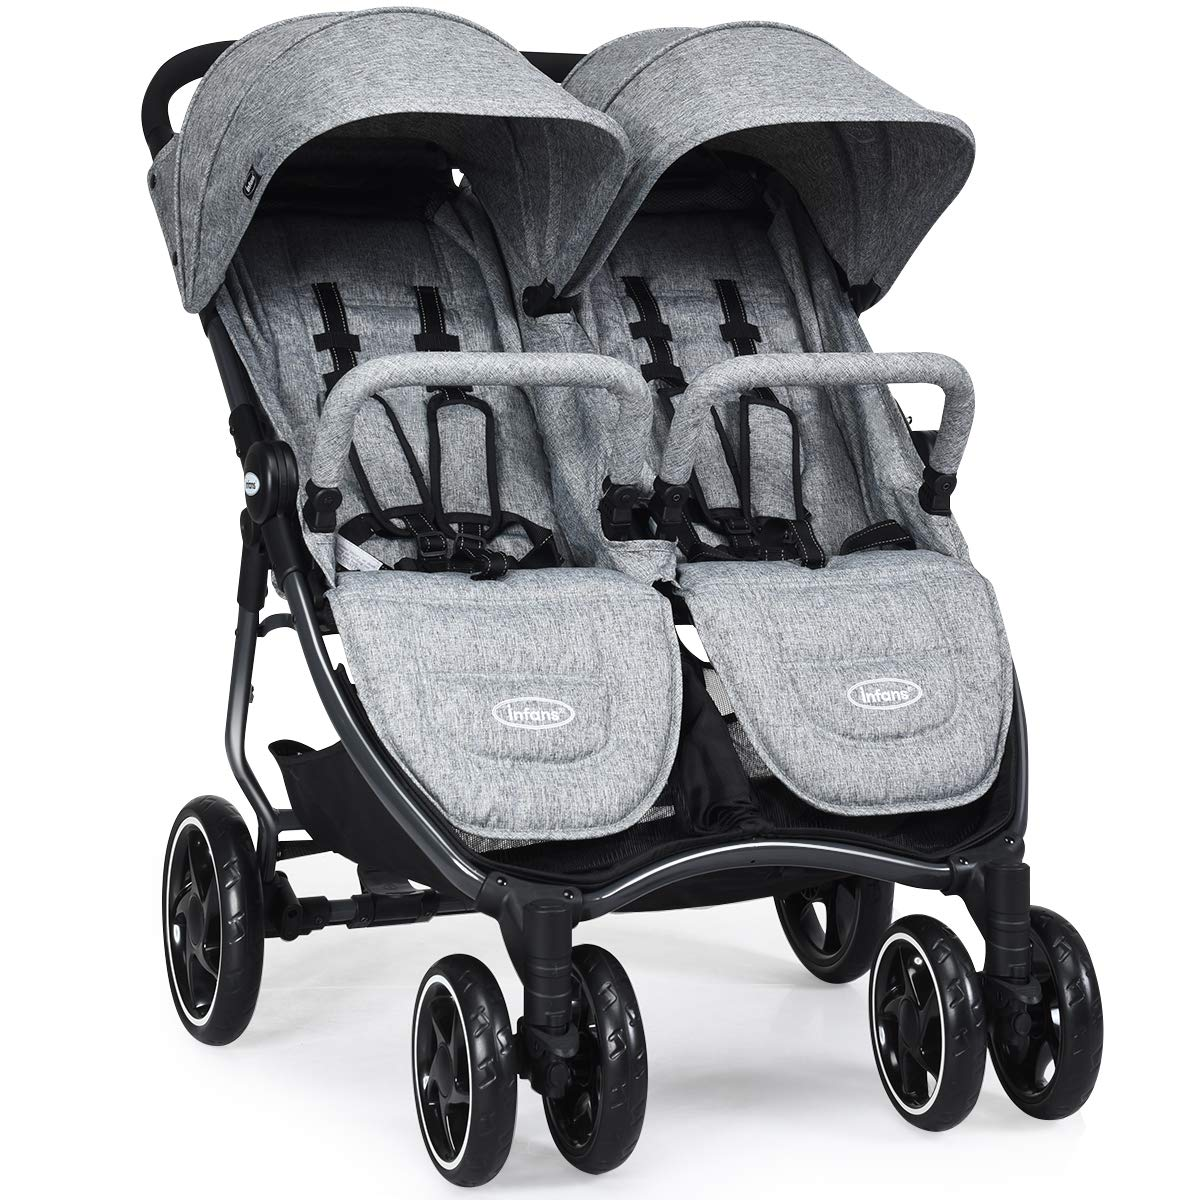 INFANS Double Stroller, Lightweight & Easy Folding Duo Baby Stroller with Side by Side Twin Seats, Night Reflective 5-Point Safety Harness, Suitable for 6 Months to 3 Years (Grey) by INFANS